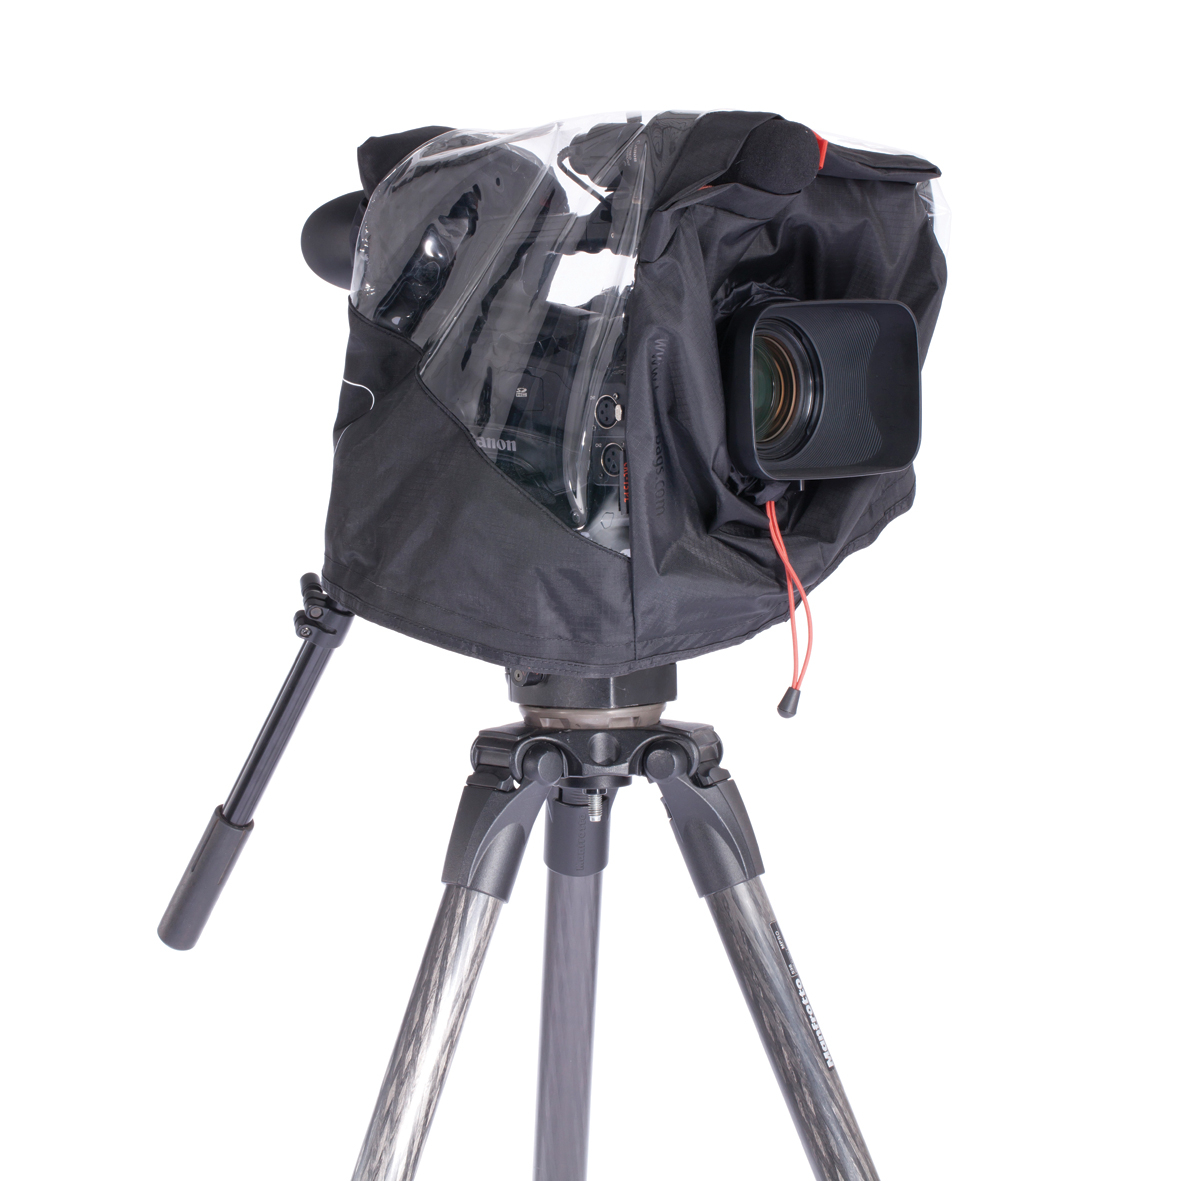 Photo Cases & Bags Kata Bags UK - CRC-15 PL for Canon XF300, Sony F3, and similar